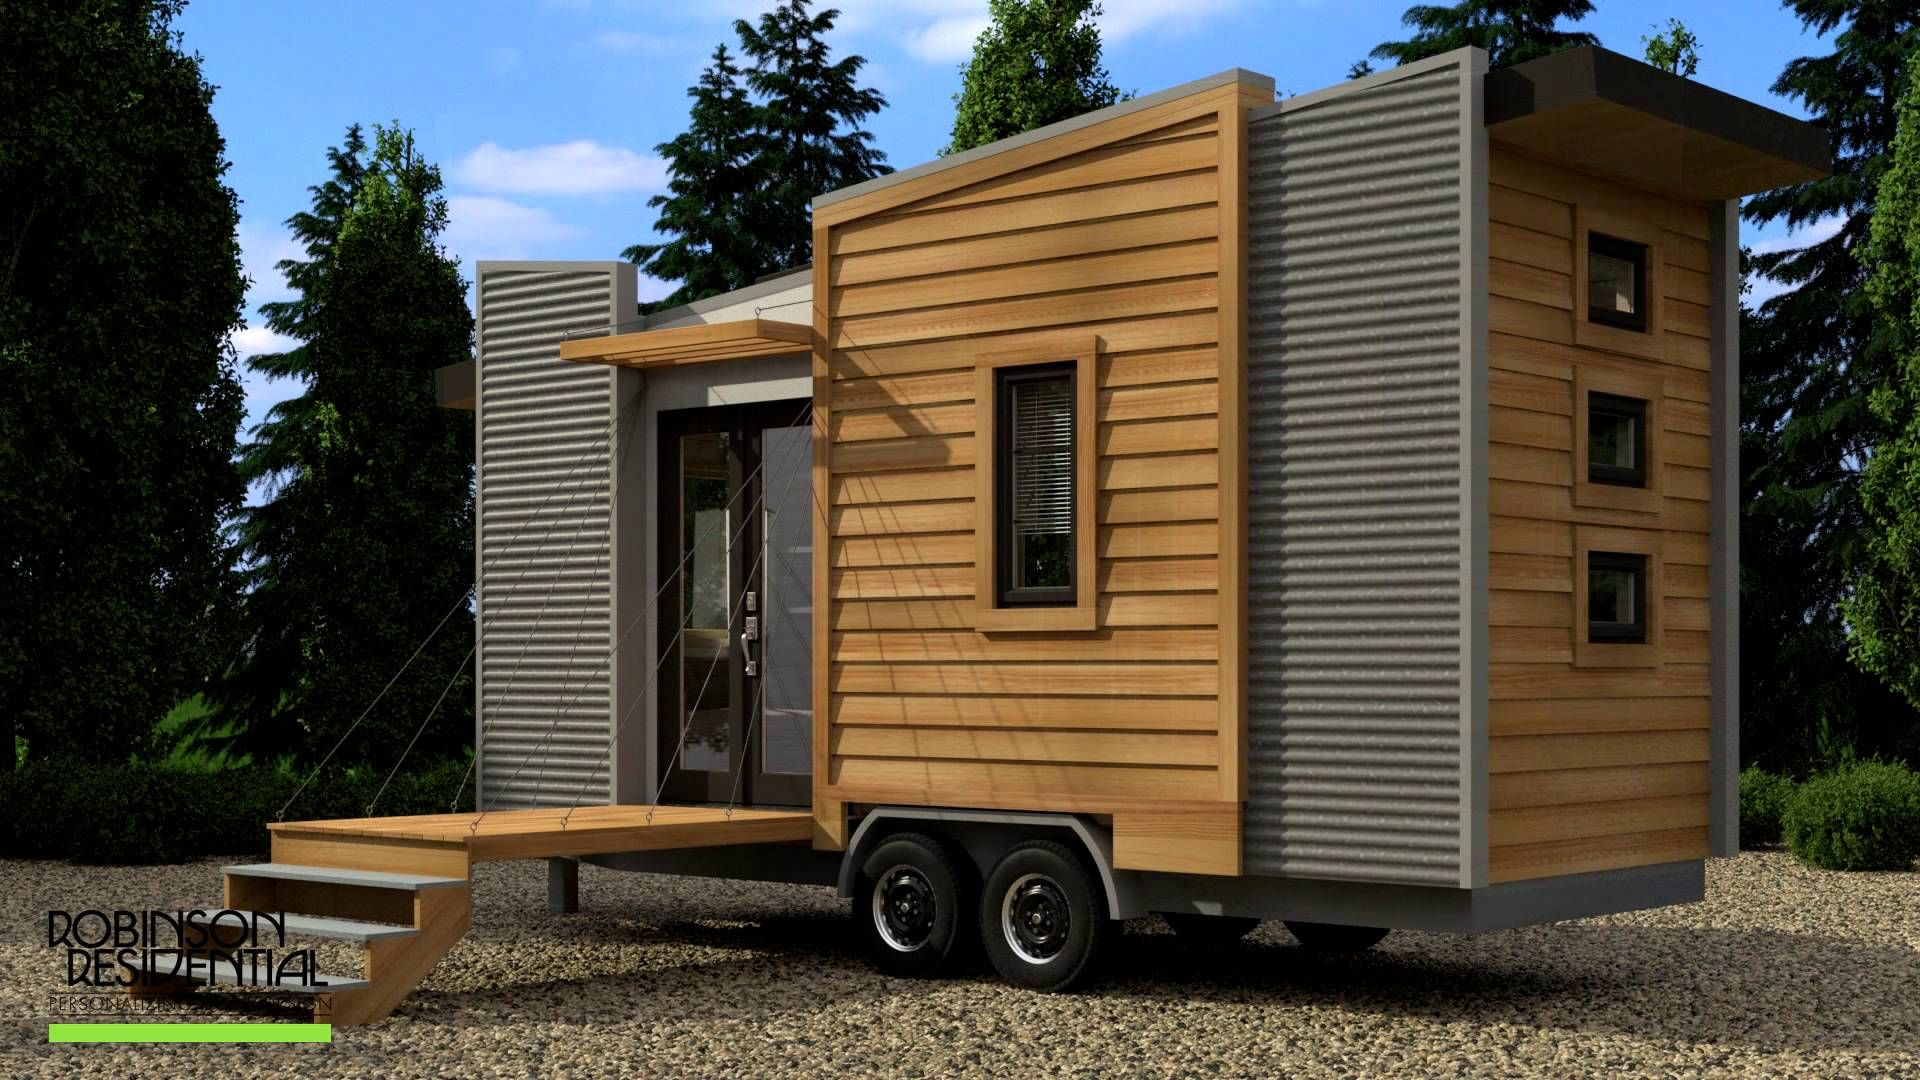 Robinson Dragon Fly Tiny House Design tiny houses Pinterest